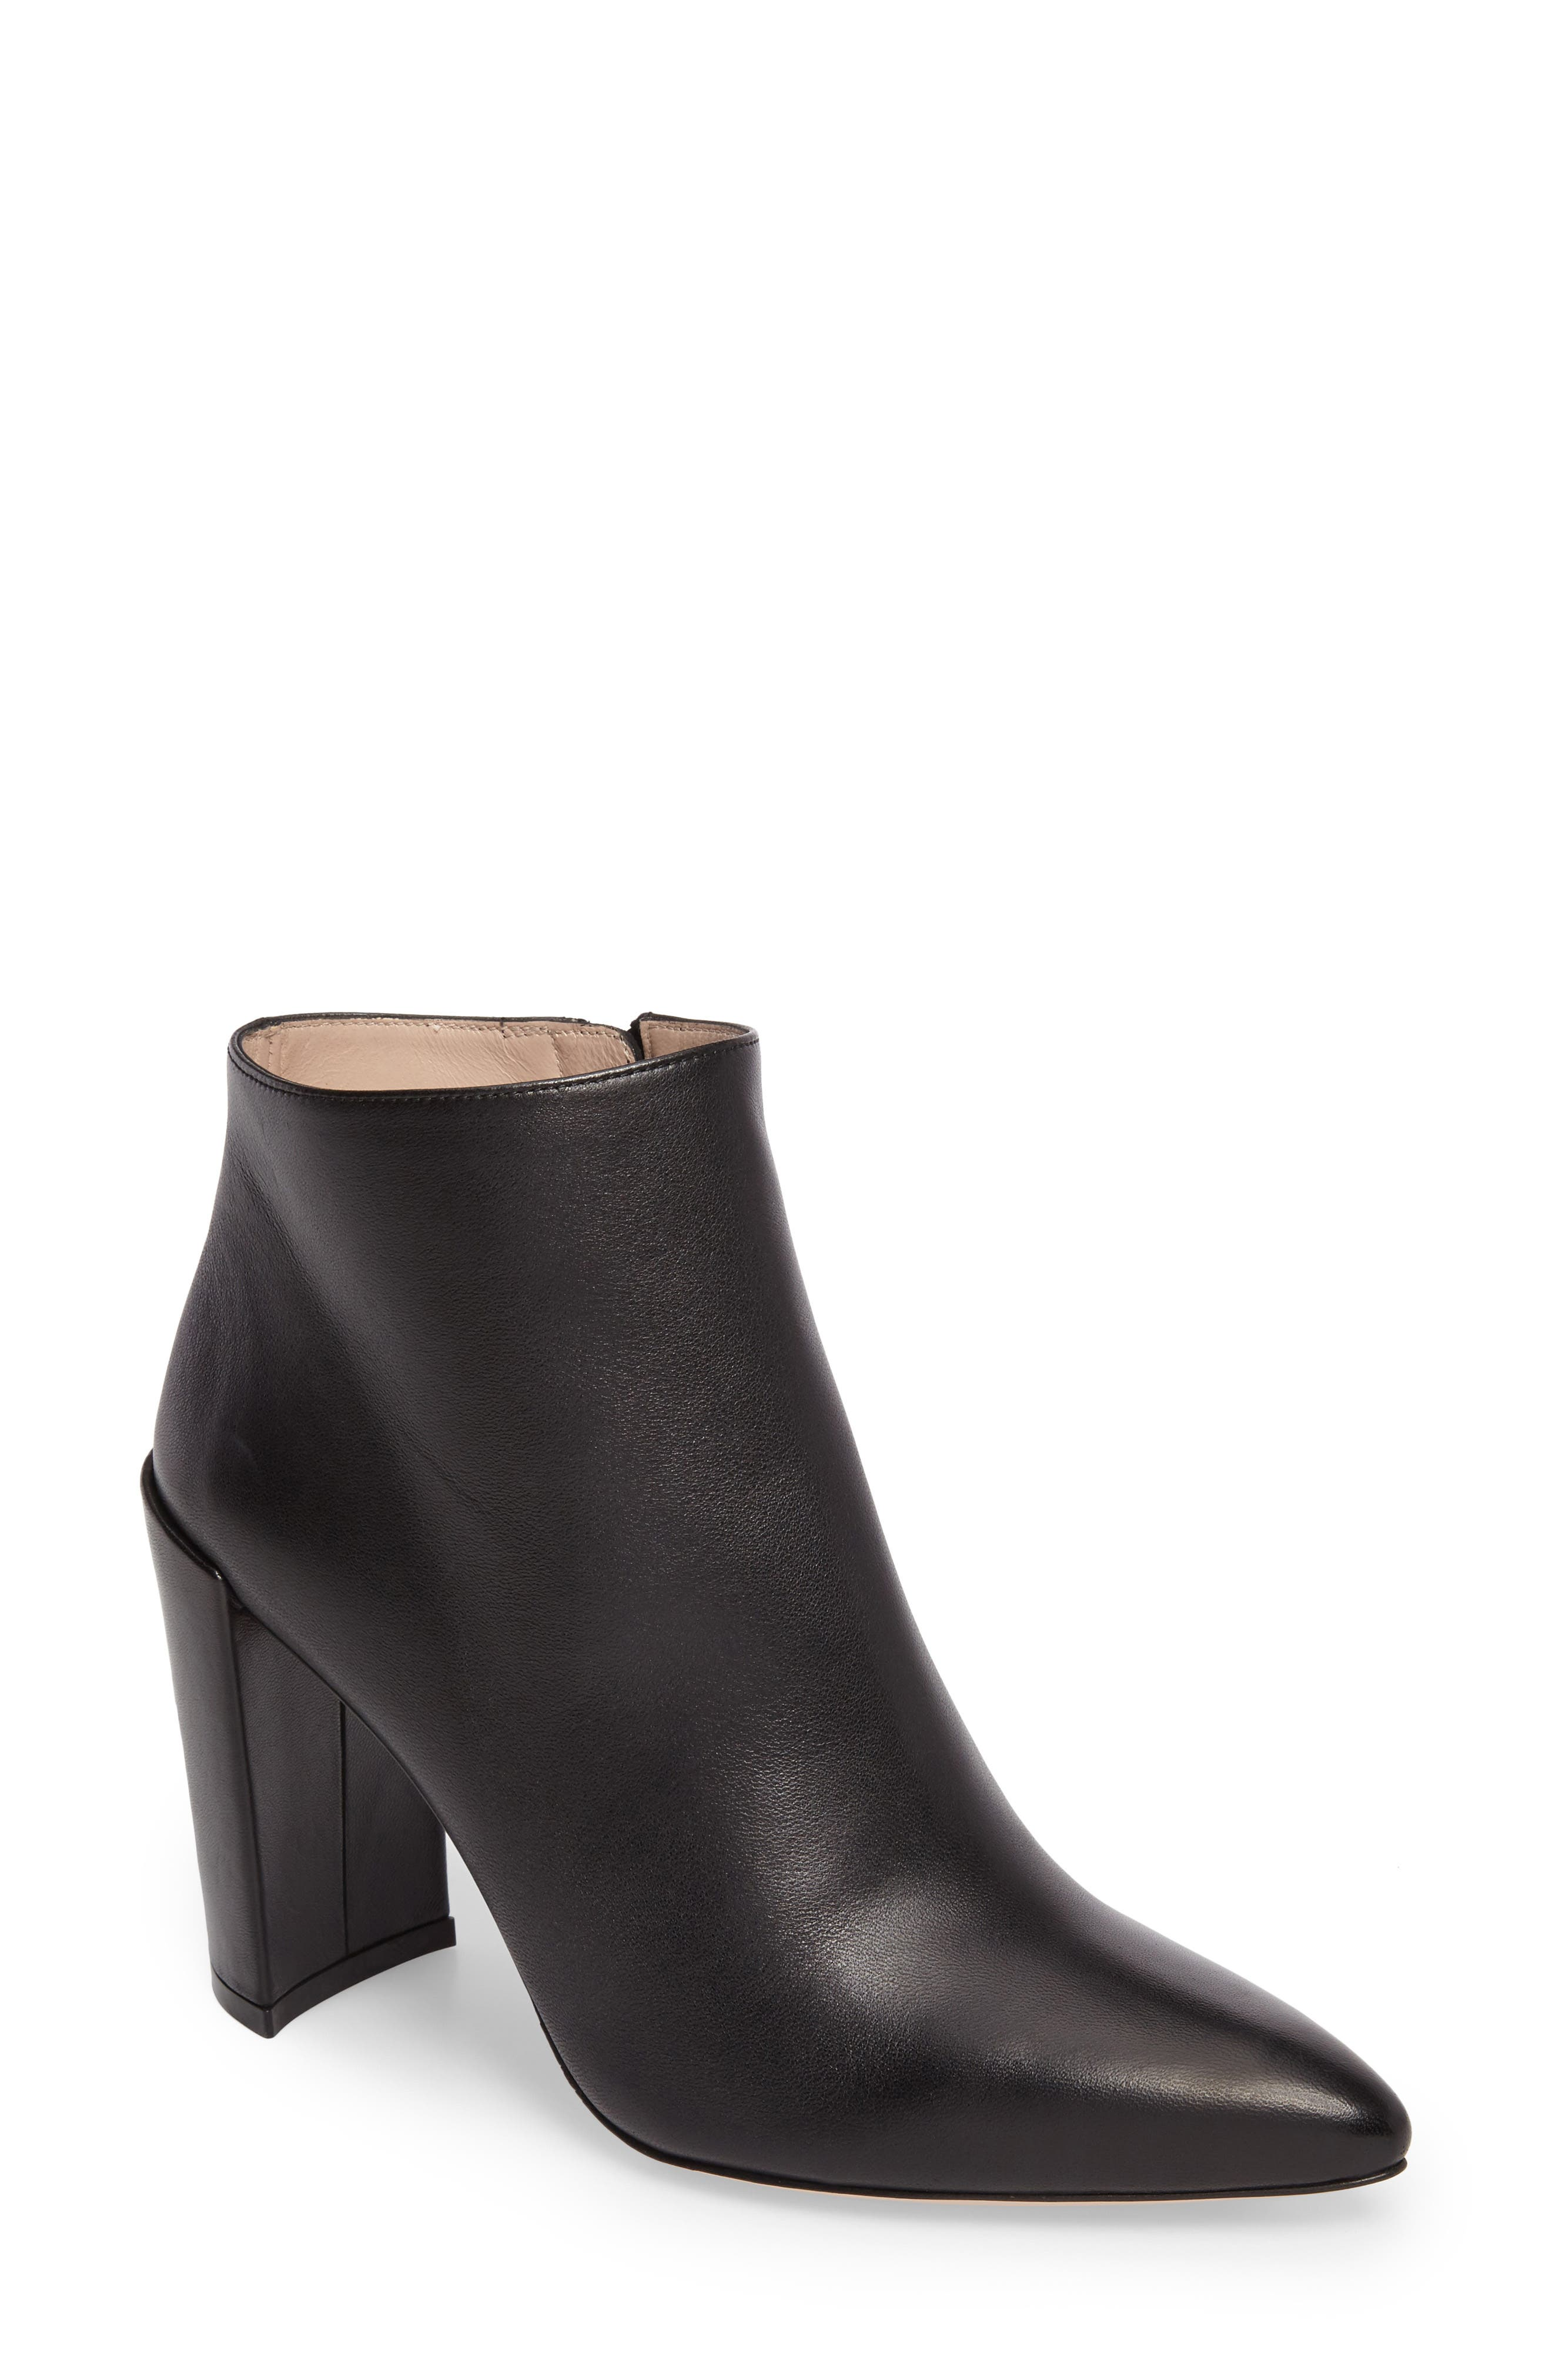 Pure Pointy Toe Bootie,                         Main,                         color, Black Nappa